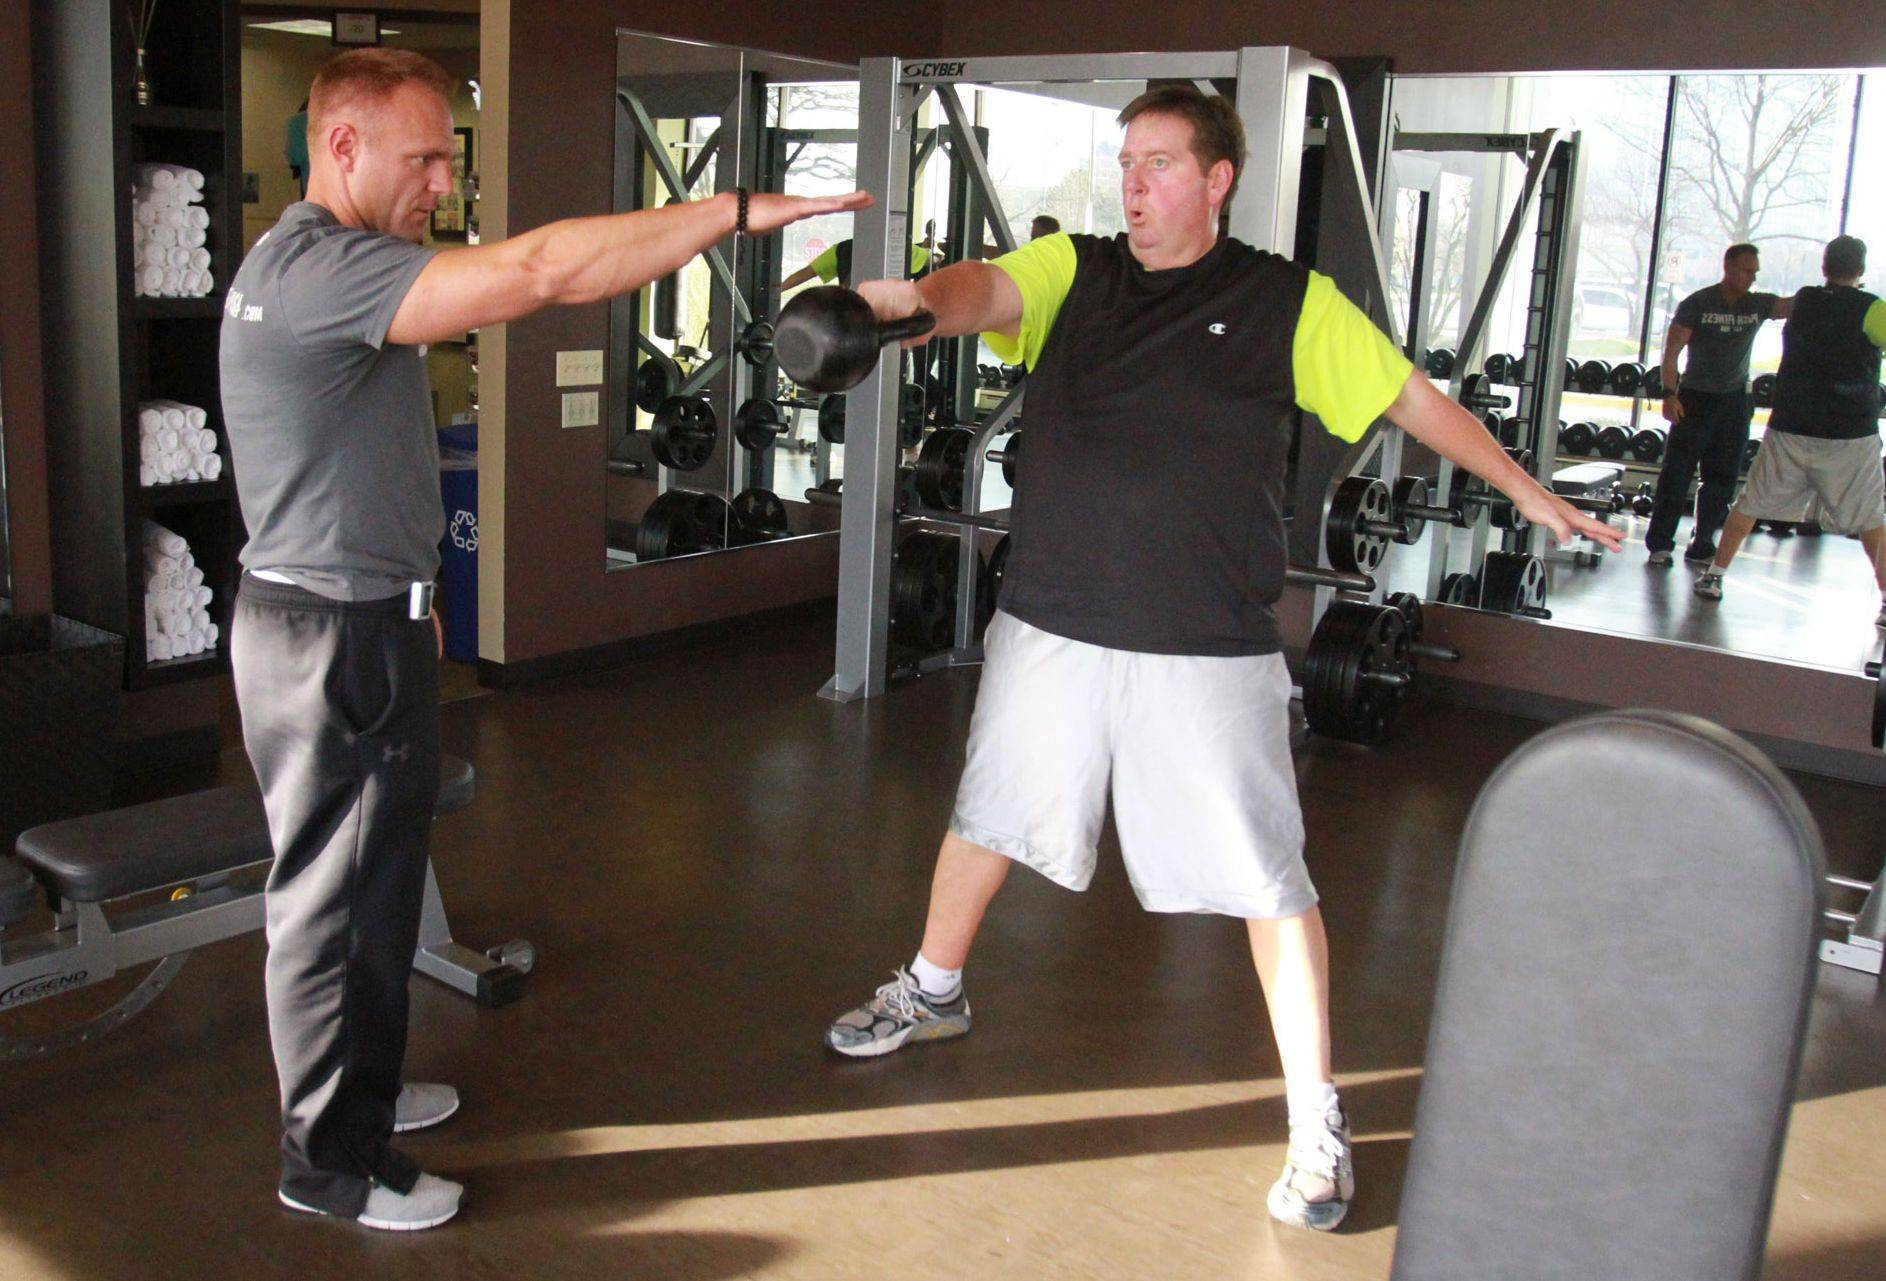 Today Matt Kramer, right, weighs in at 268, 107 pounds less than he weighed in February. He continues to train with Mark Trapp at Push Fitness.